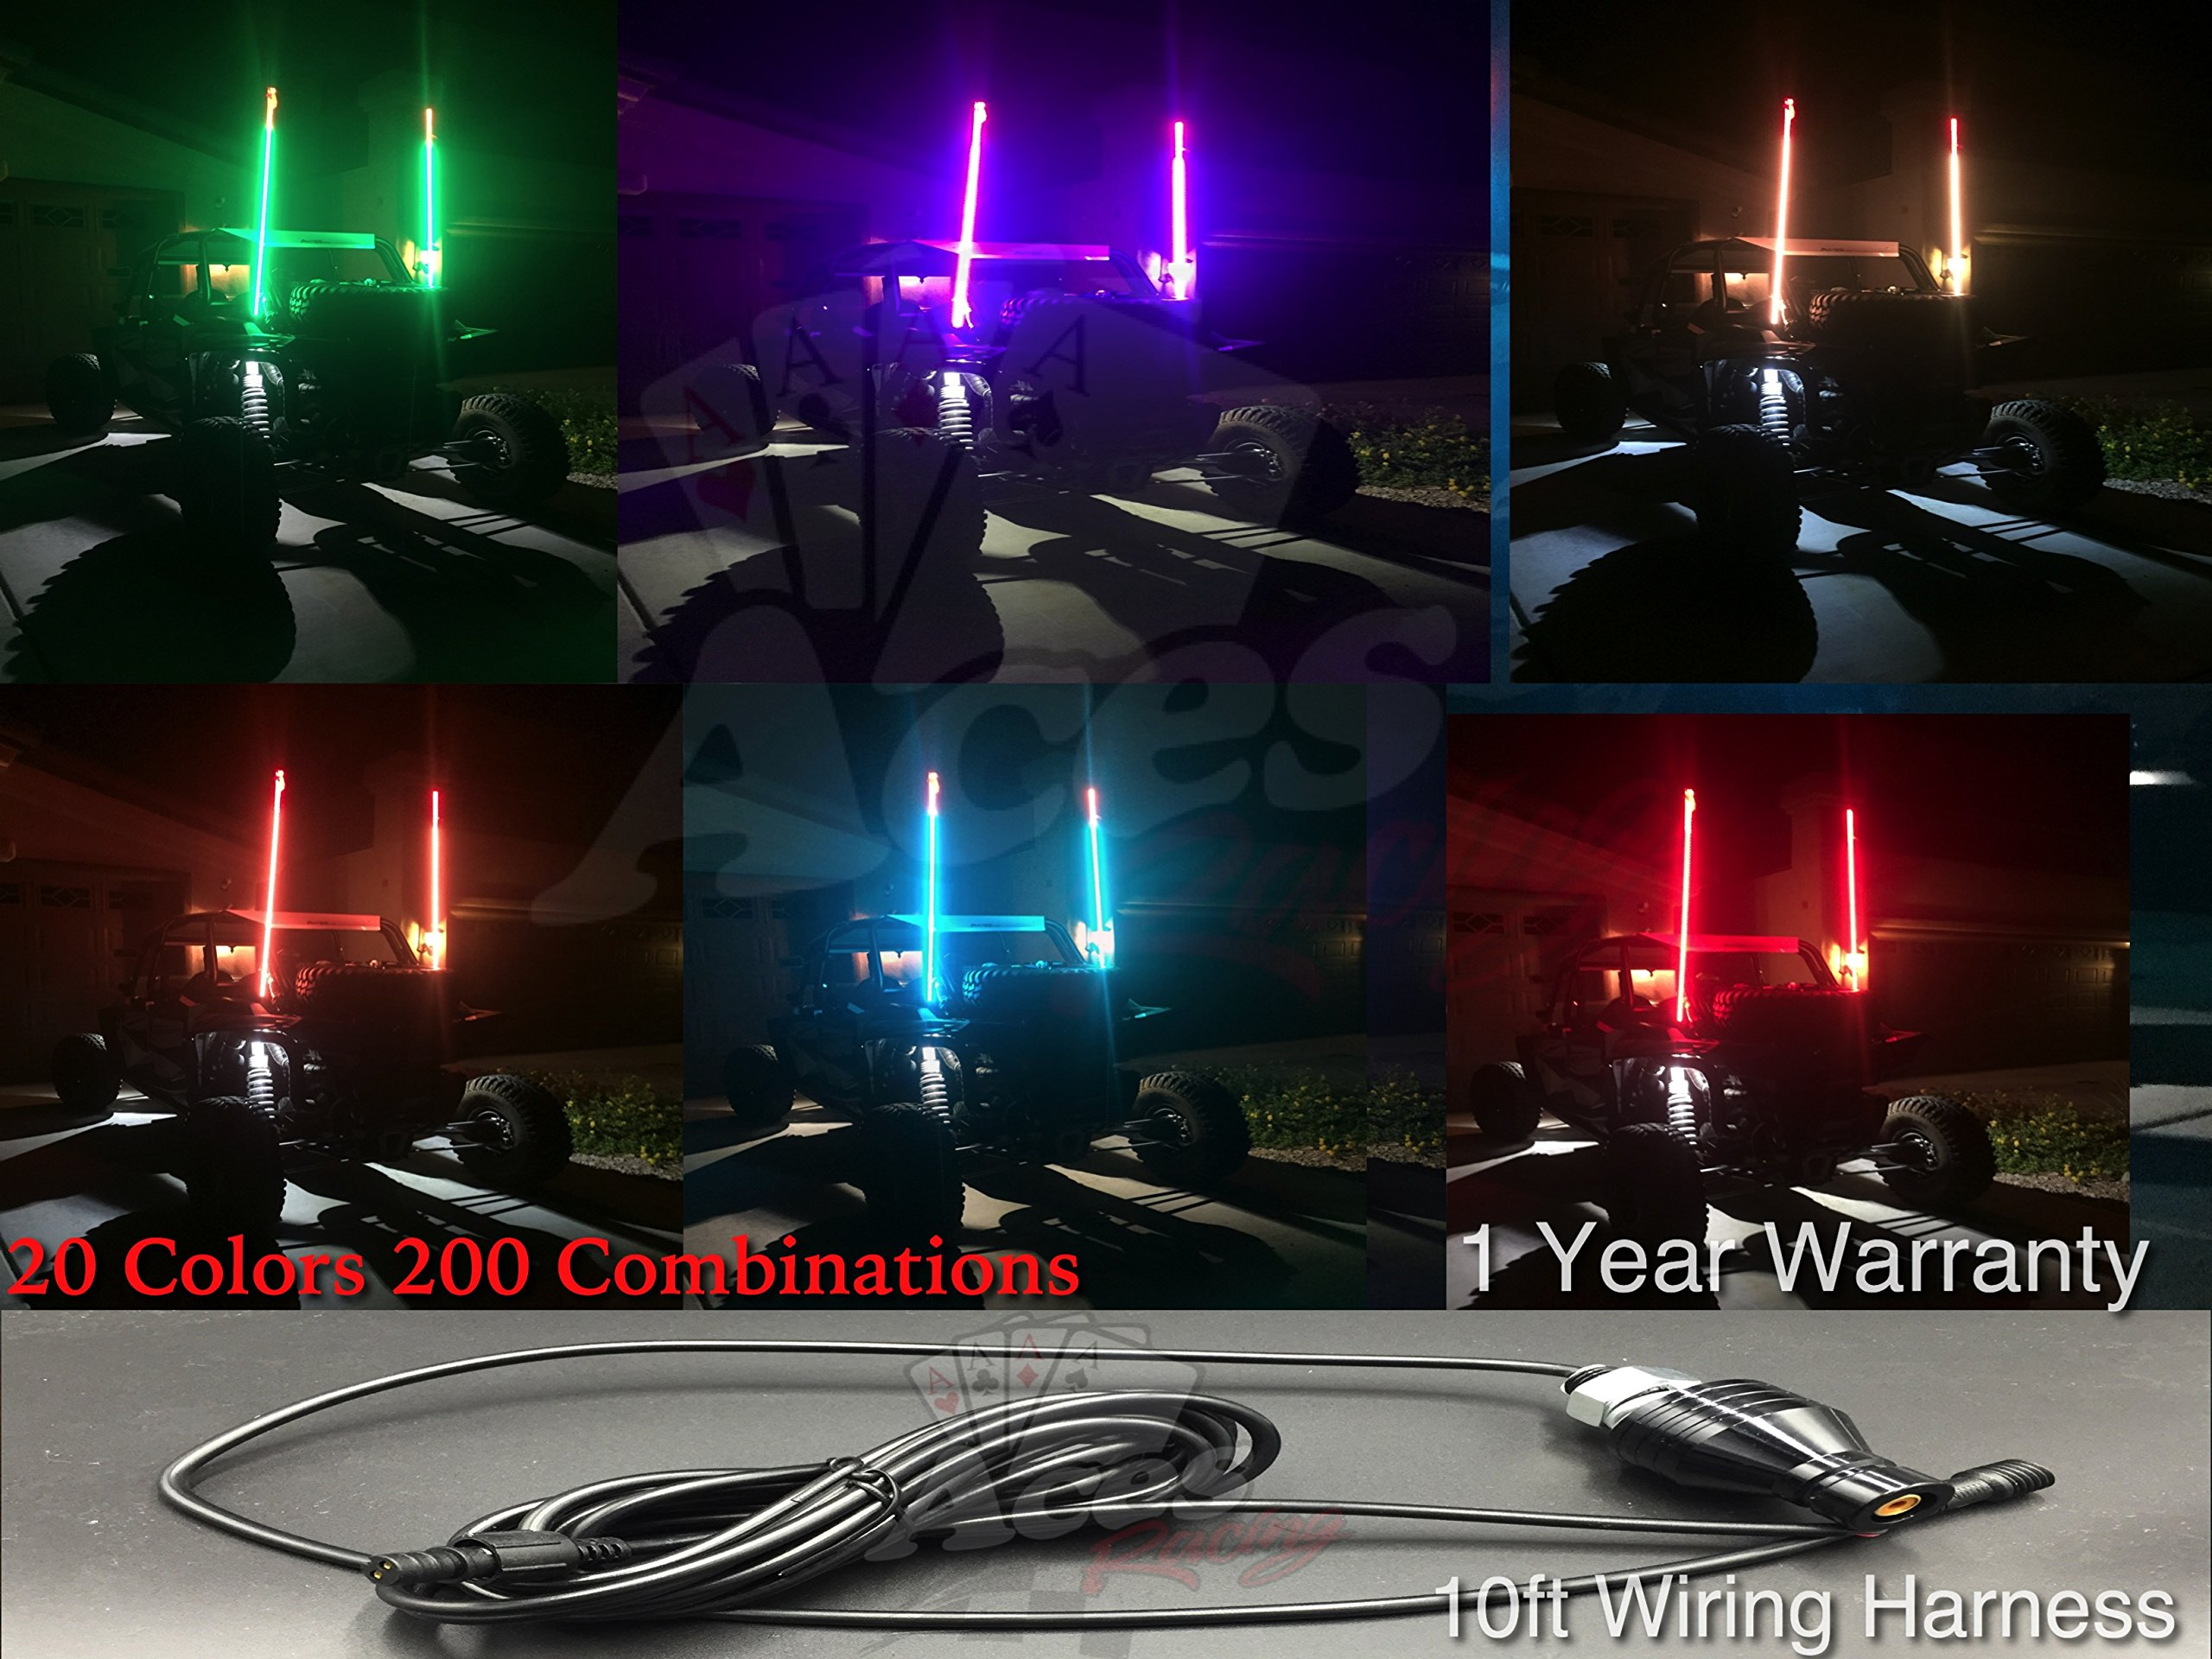 4ft 20 Color 200 Combination LED Whip With Remote and Quick Connect